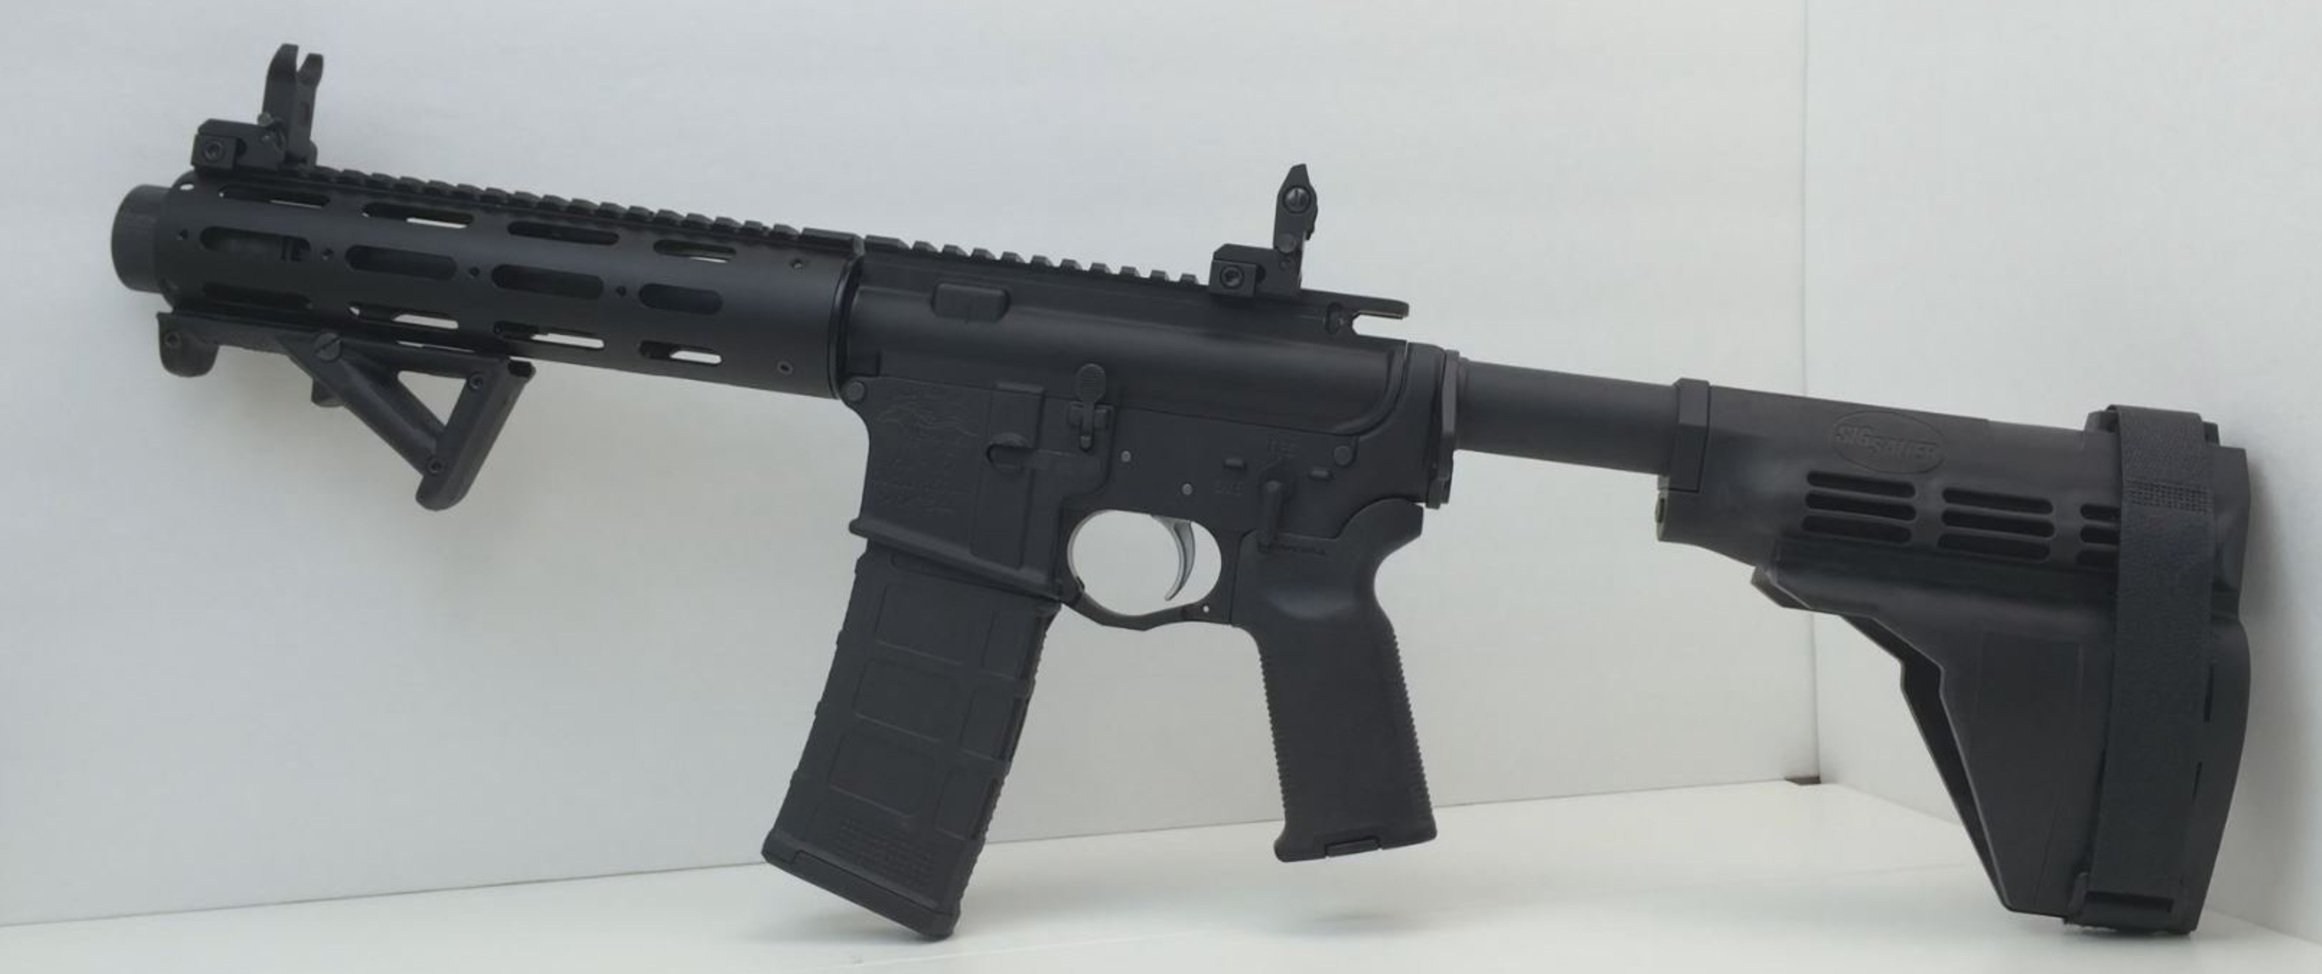 6 AR 15 Parts to Upgrade Your AR Pistol Build - 80% L❂WERS